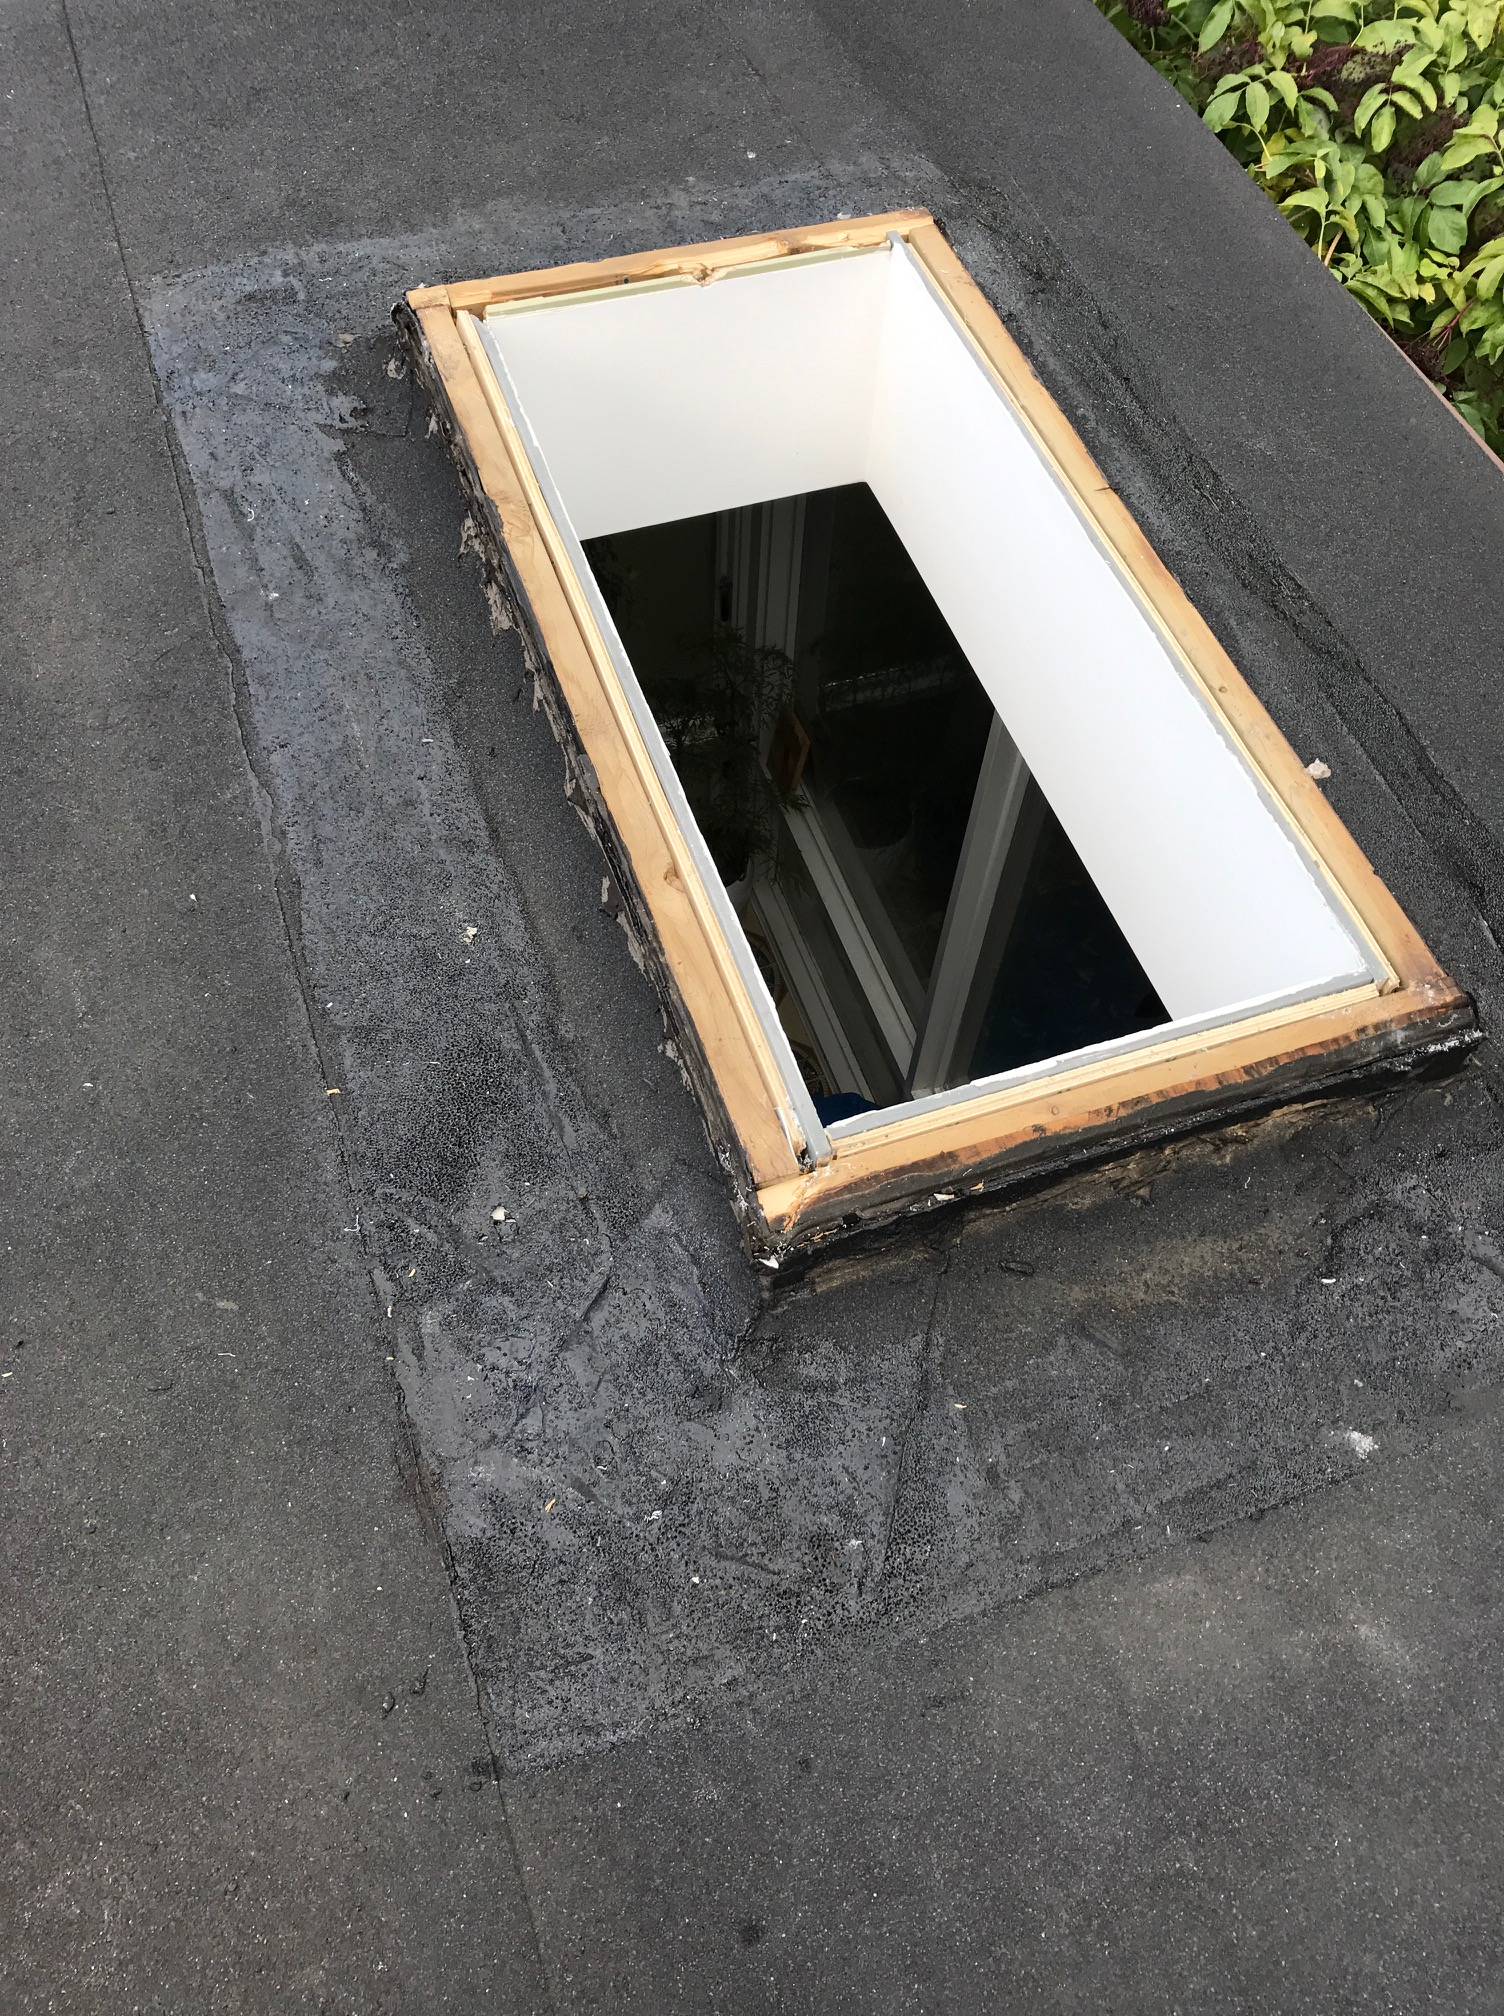 Skylight Replacement On Flat Roof In North York Roofing